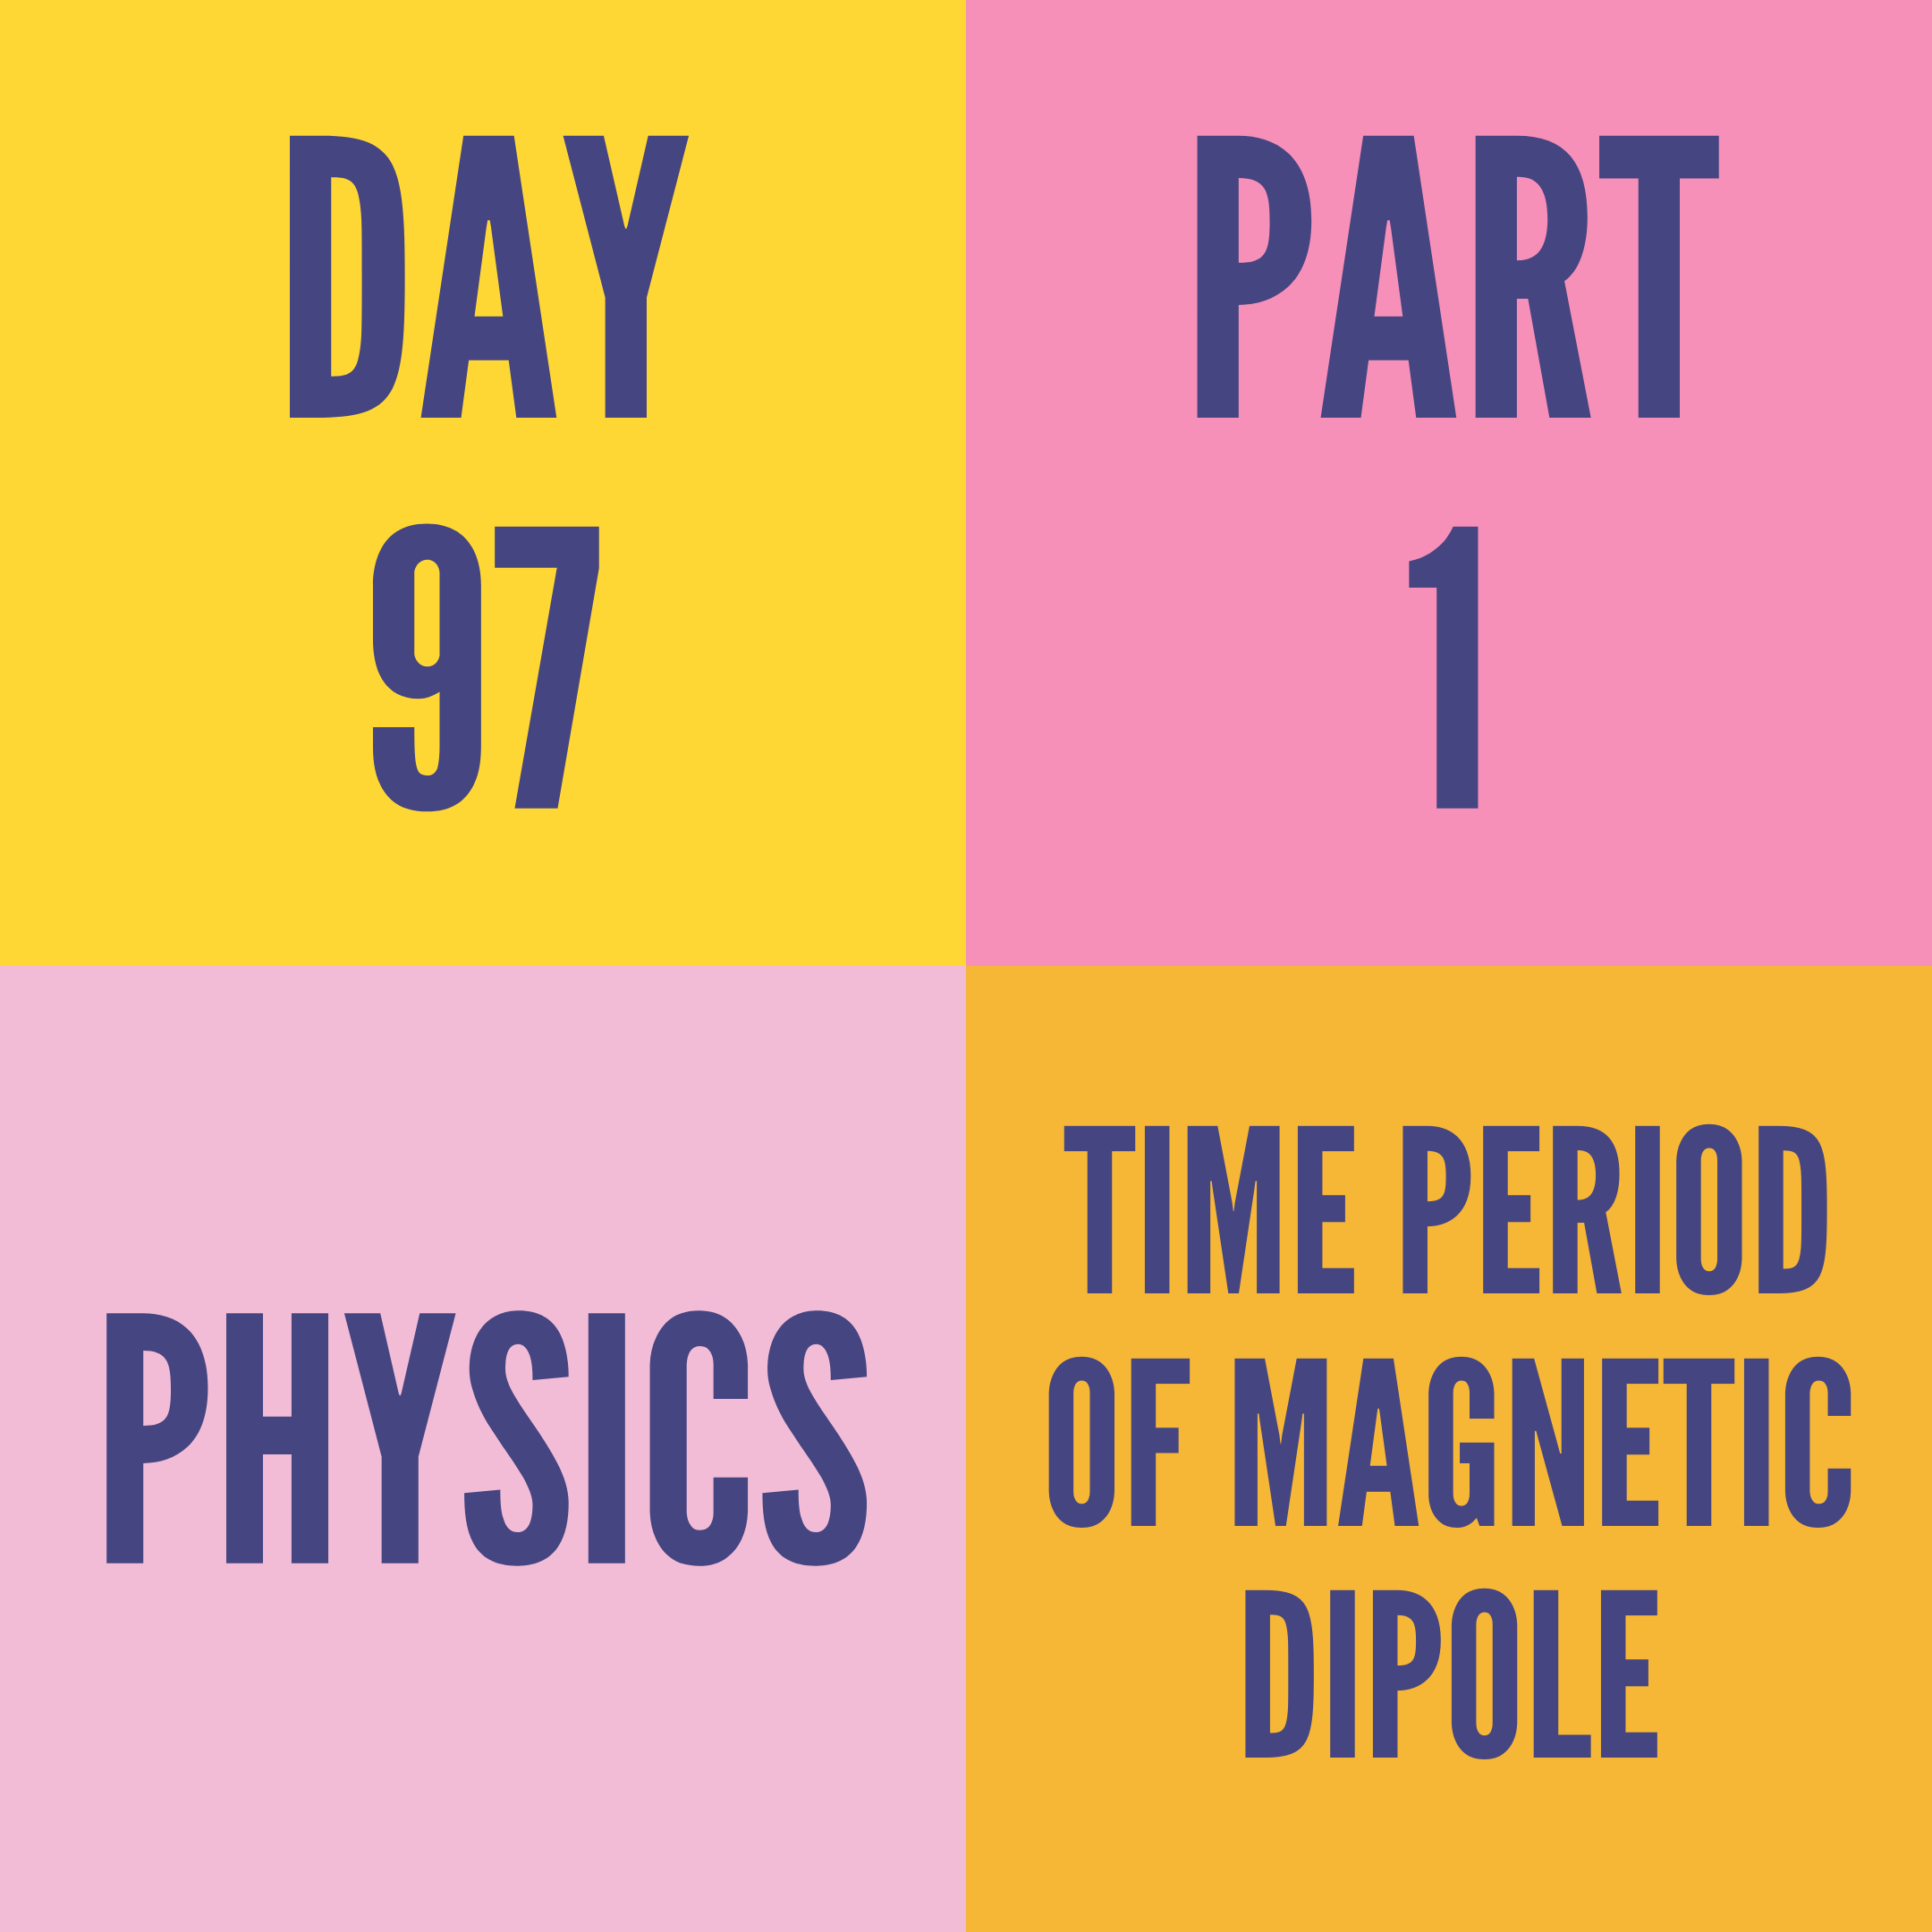 DAY-97 PART-1 TIME PERIOD OF MAGNETIC DIPOLE